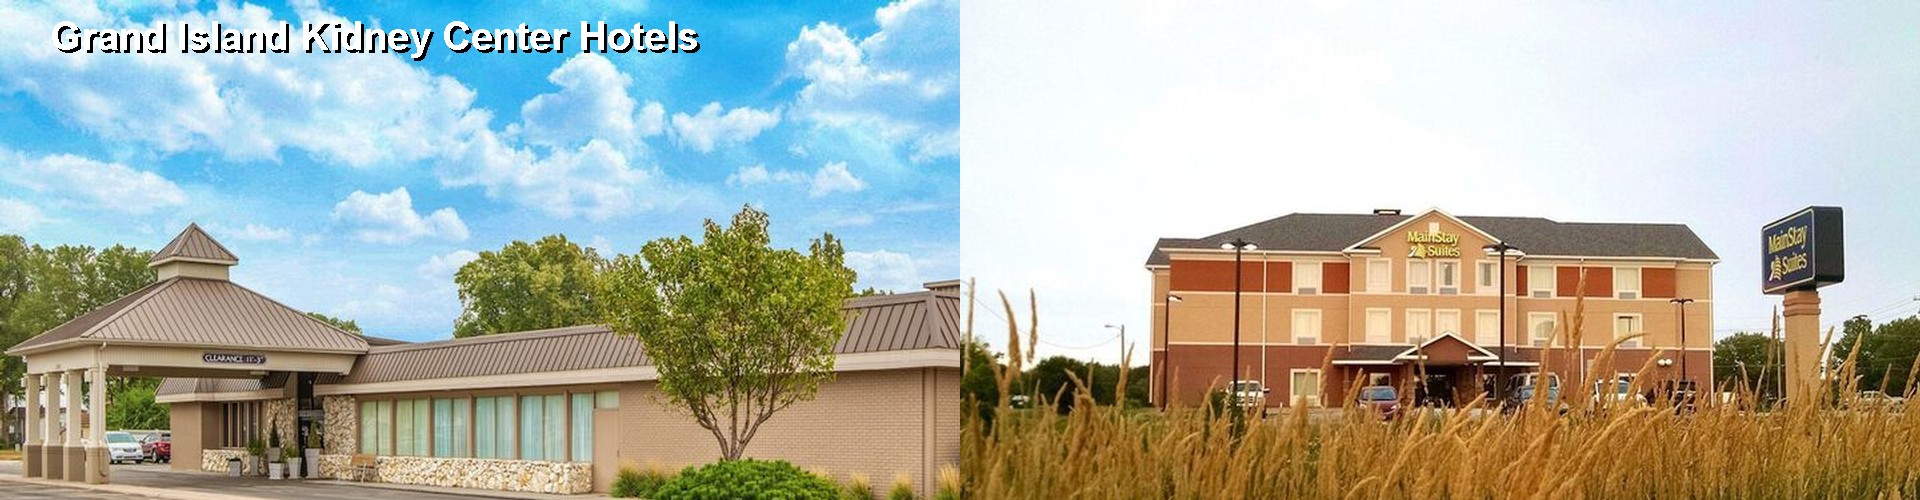 5 Best Hotels near Grand Island Kidney Center